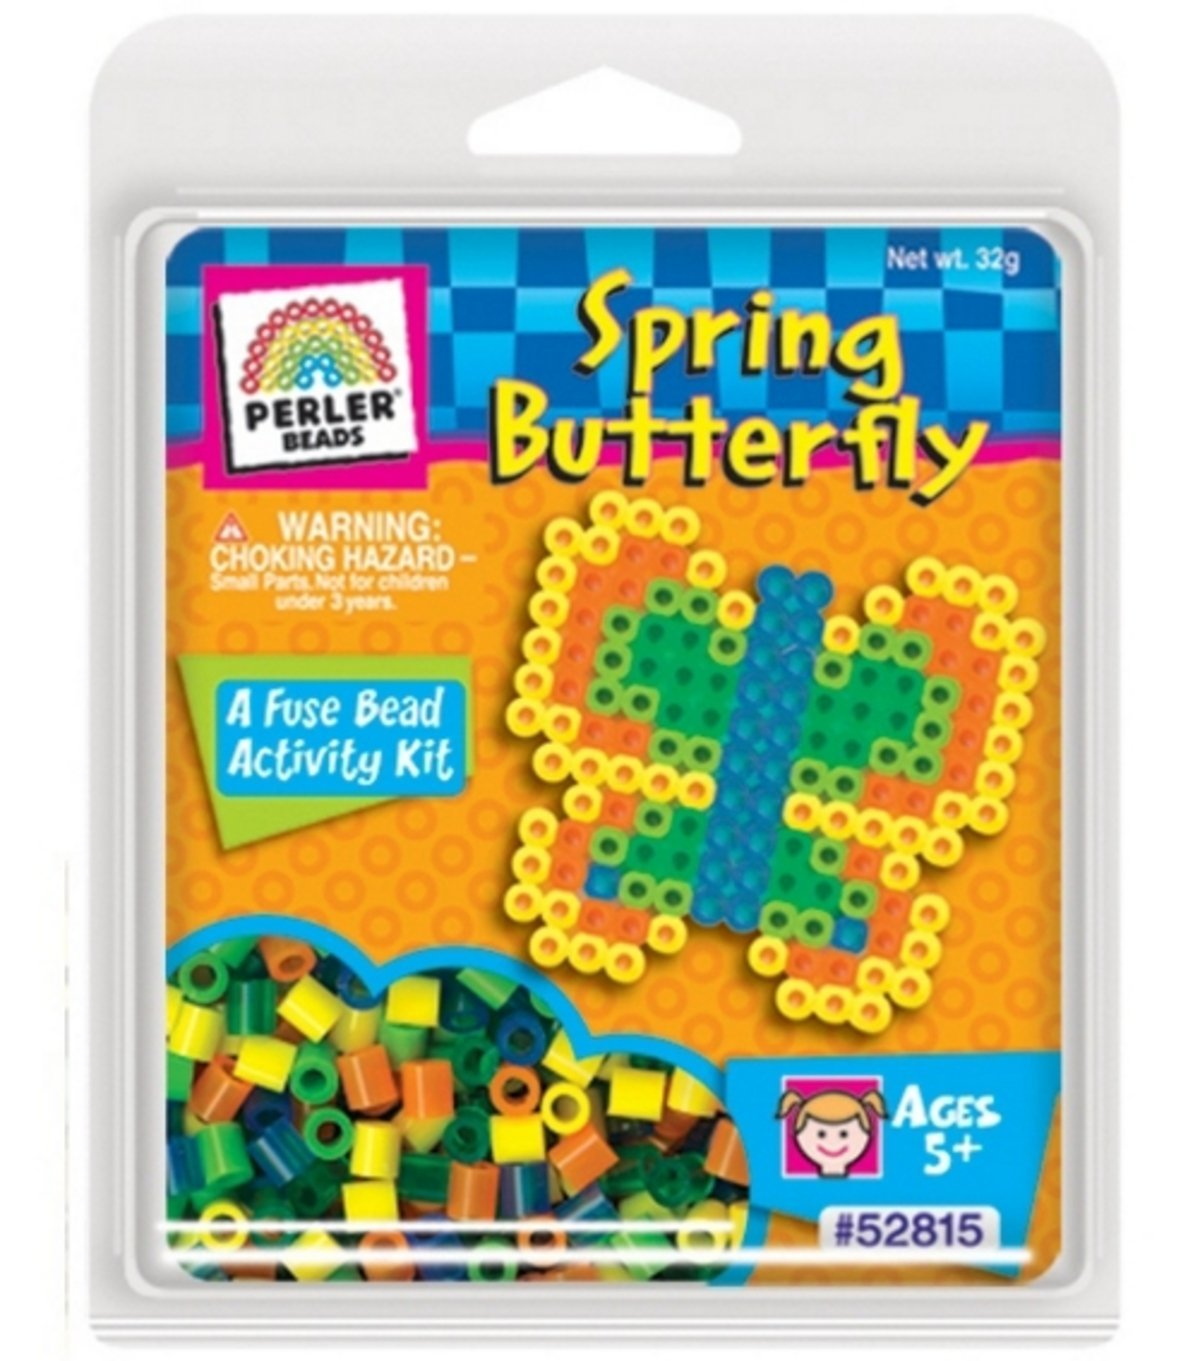 Perler Activity Trial Size Fuse Bead Activity Kit - Spring Butterfly #52815